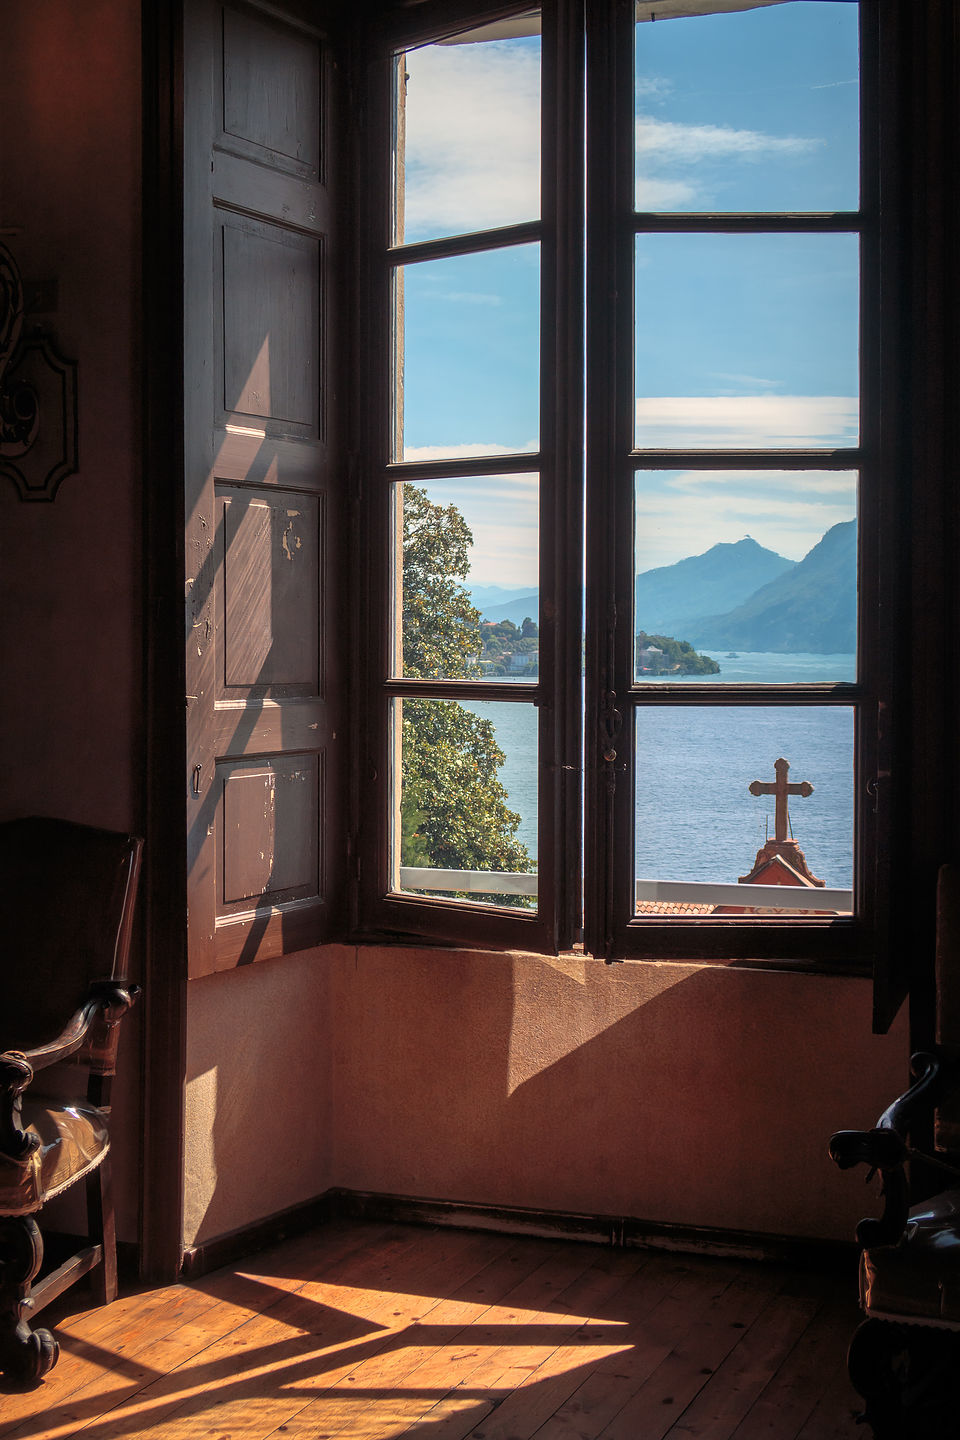 Isola Madre view of chapel from villa